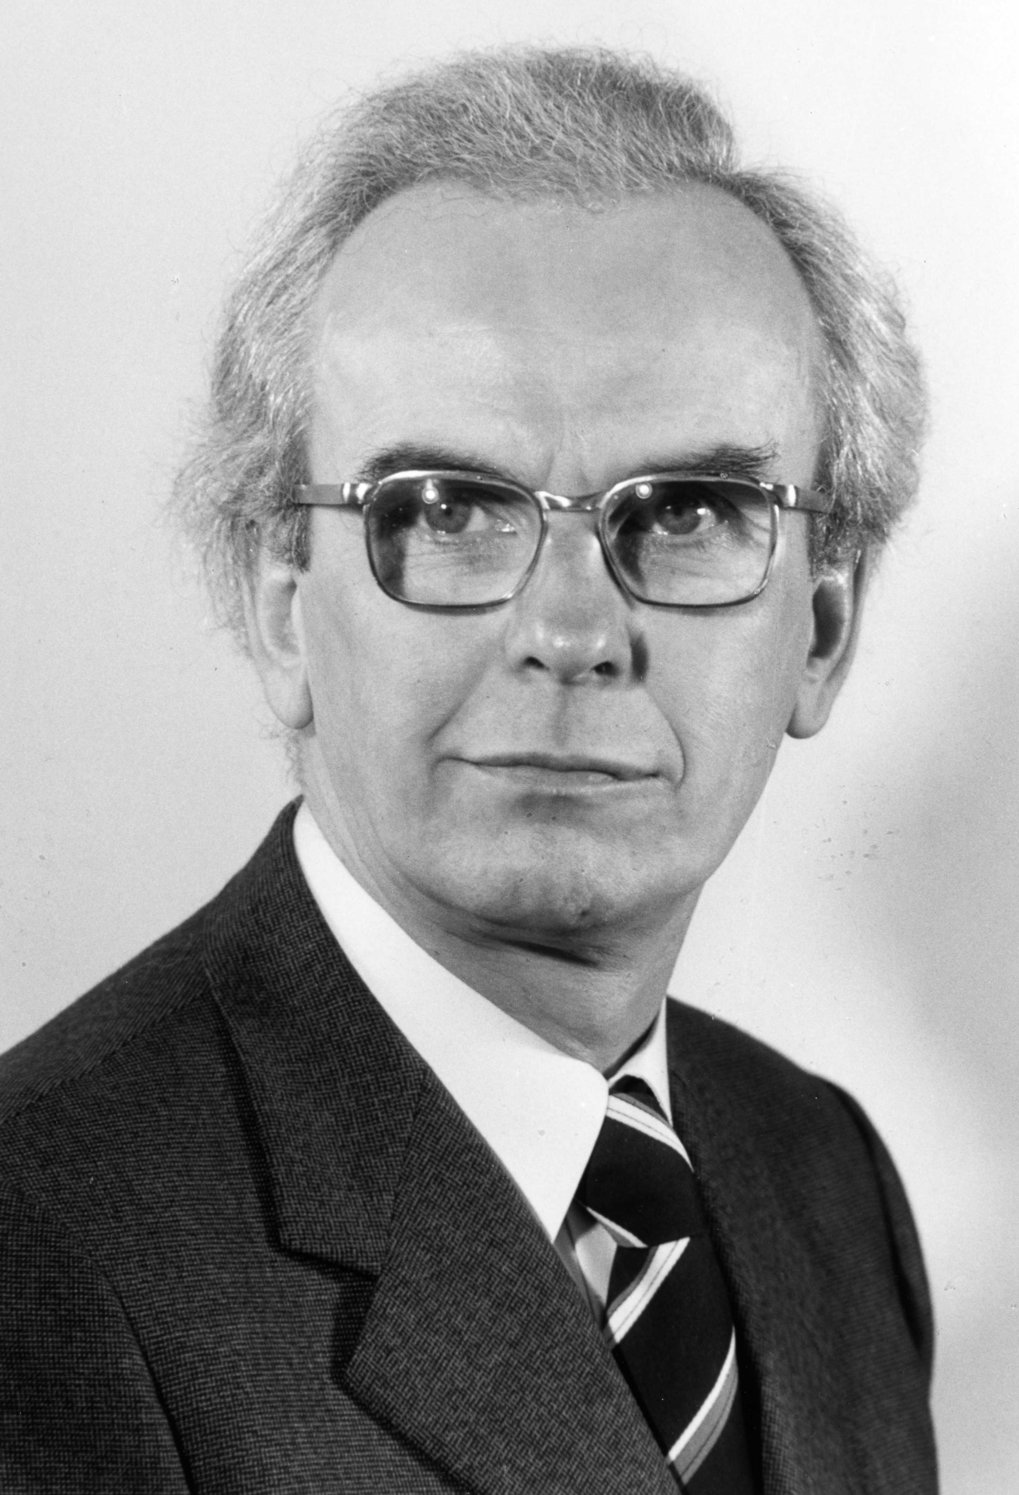 Under Hans-Jürgen Engell, director of the institute since 1971, the MPIE changed its legal form to a GmbH (limited liability company) and its focus moved to the basics of metallurgical process technology and the material science of steels